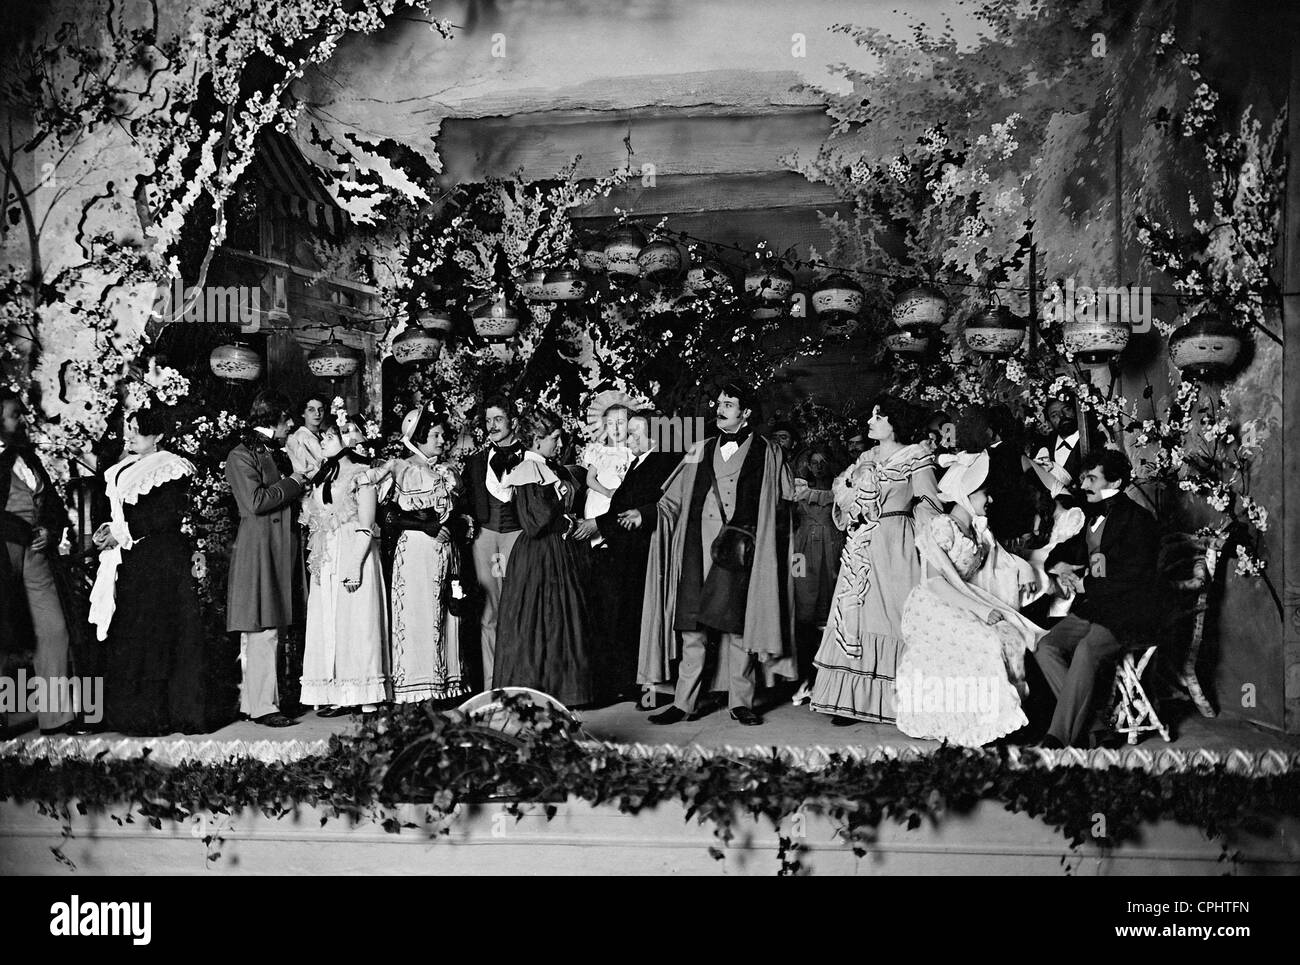 The premiere of 'Love's Comedy', 1900 - Stock Image